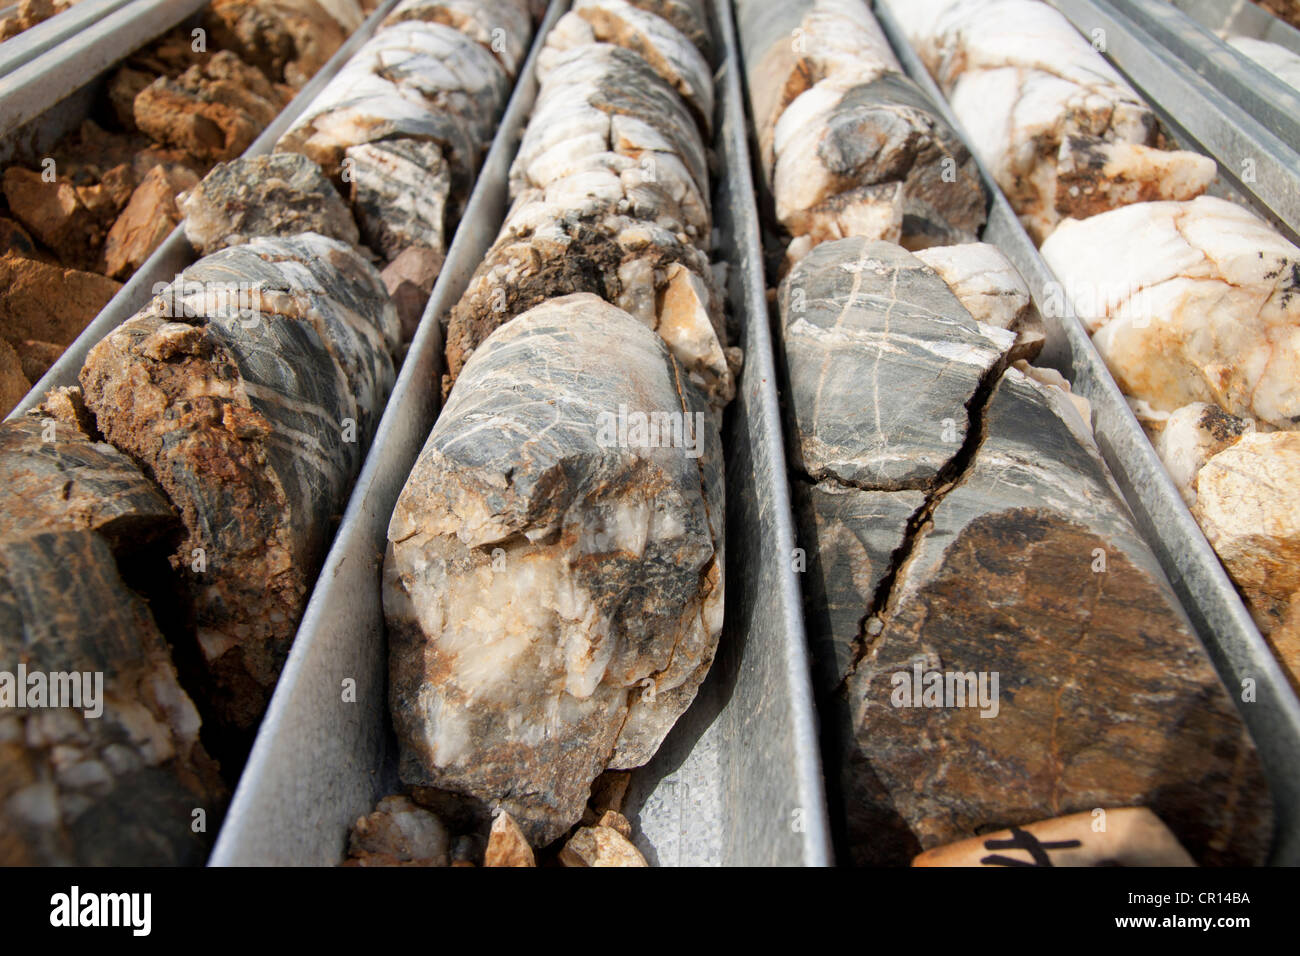 Broken bits of drill core rock sample used in mining exploration. New South Wales, Austrlia - Stock Image